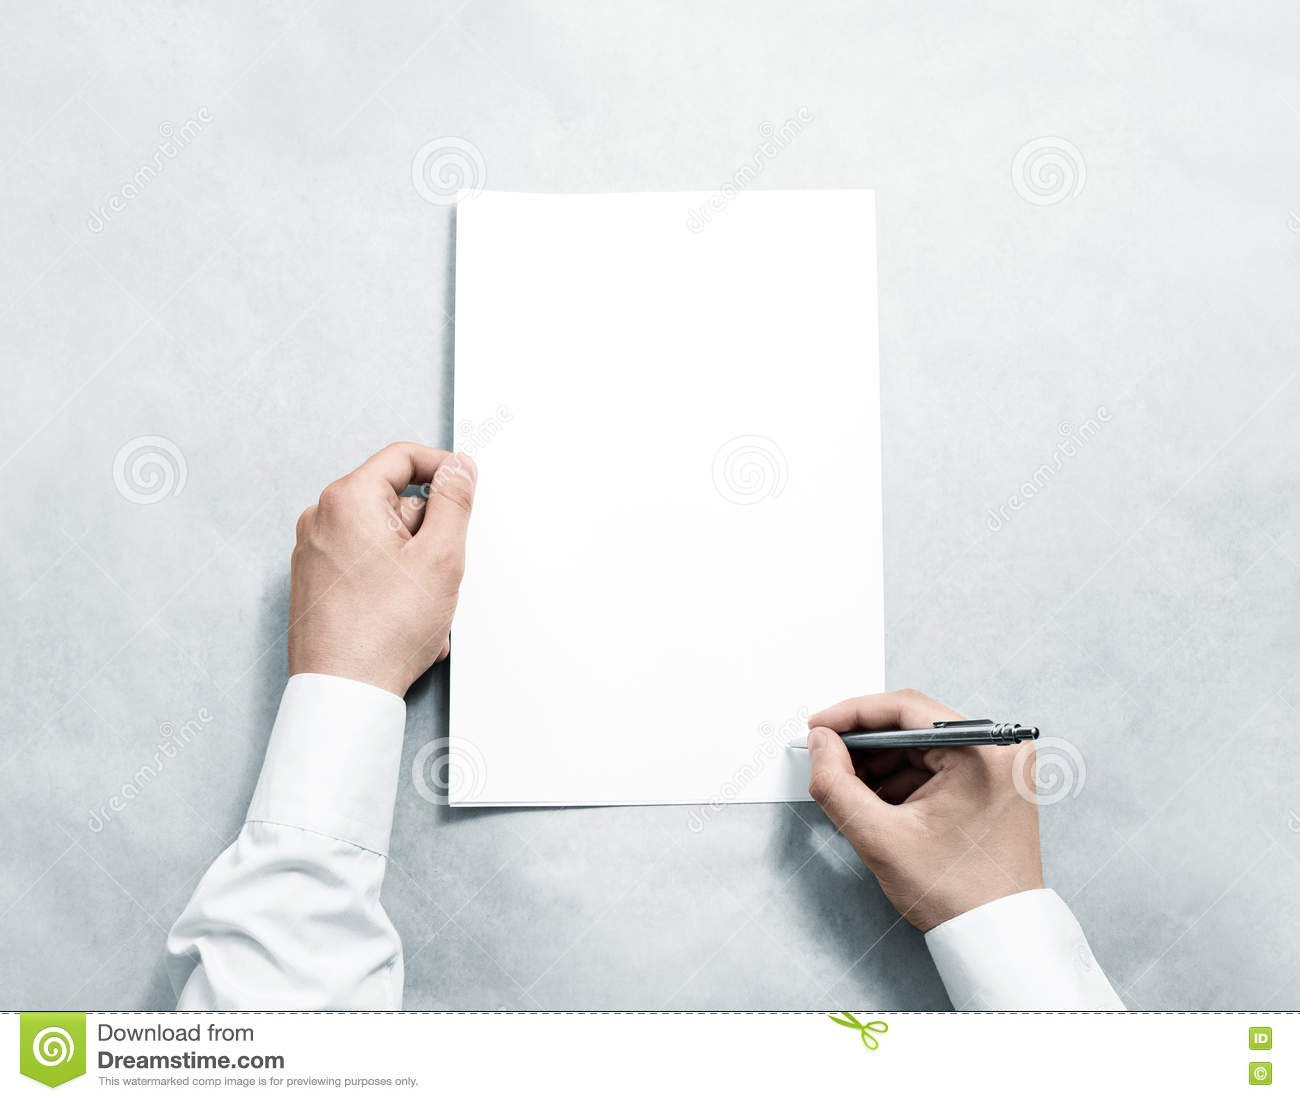 Hand Holding Blank Agreement Mockup And Signing It Stock Image Pertaining To Blank Legal Document Template